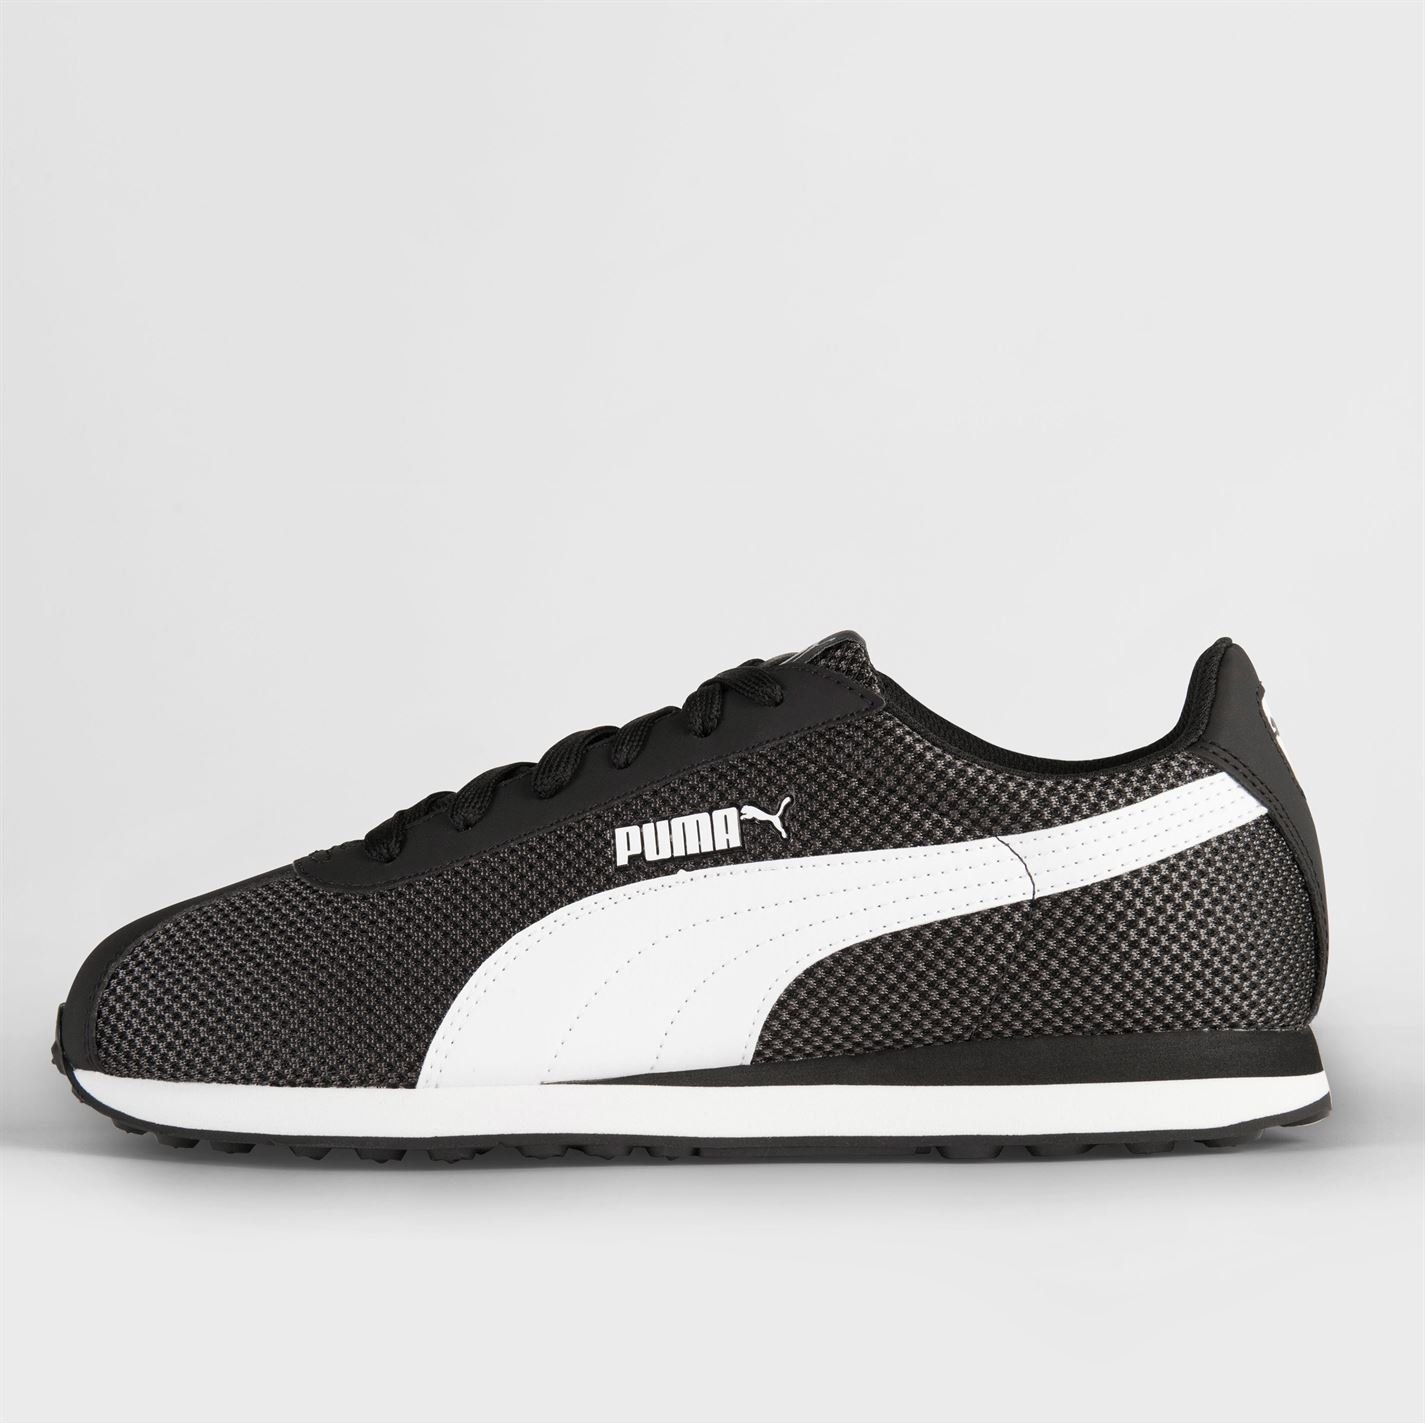 Puma-Mens-Gents-Turin-Mesh-Trainers-Shoes-Laces-Fastened-Footwear thumbnail 10